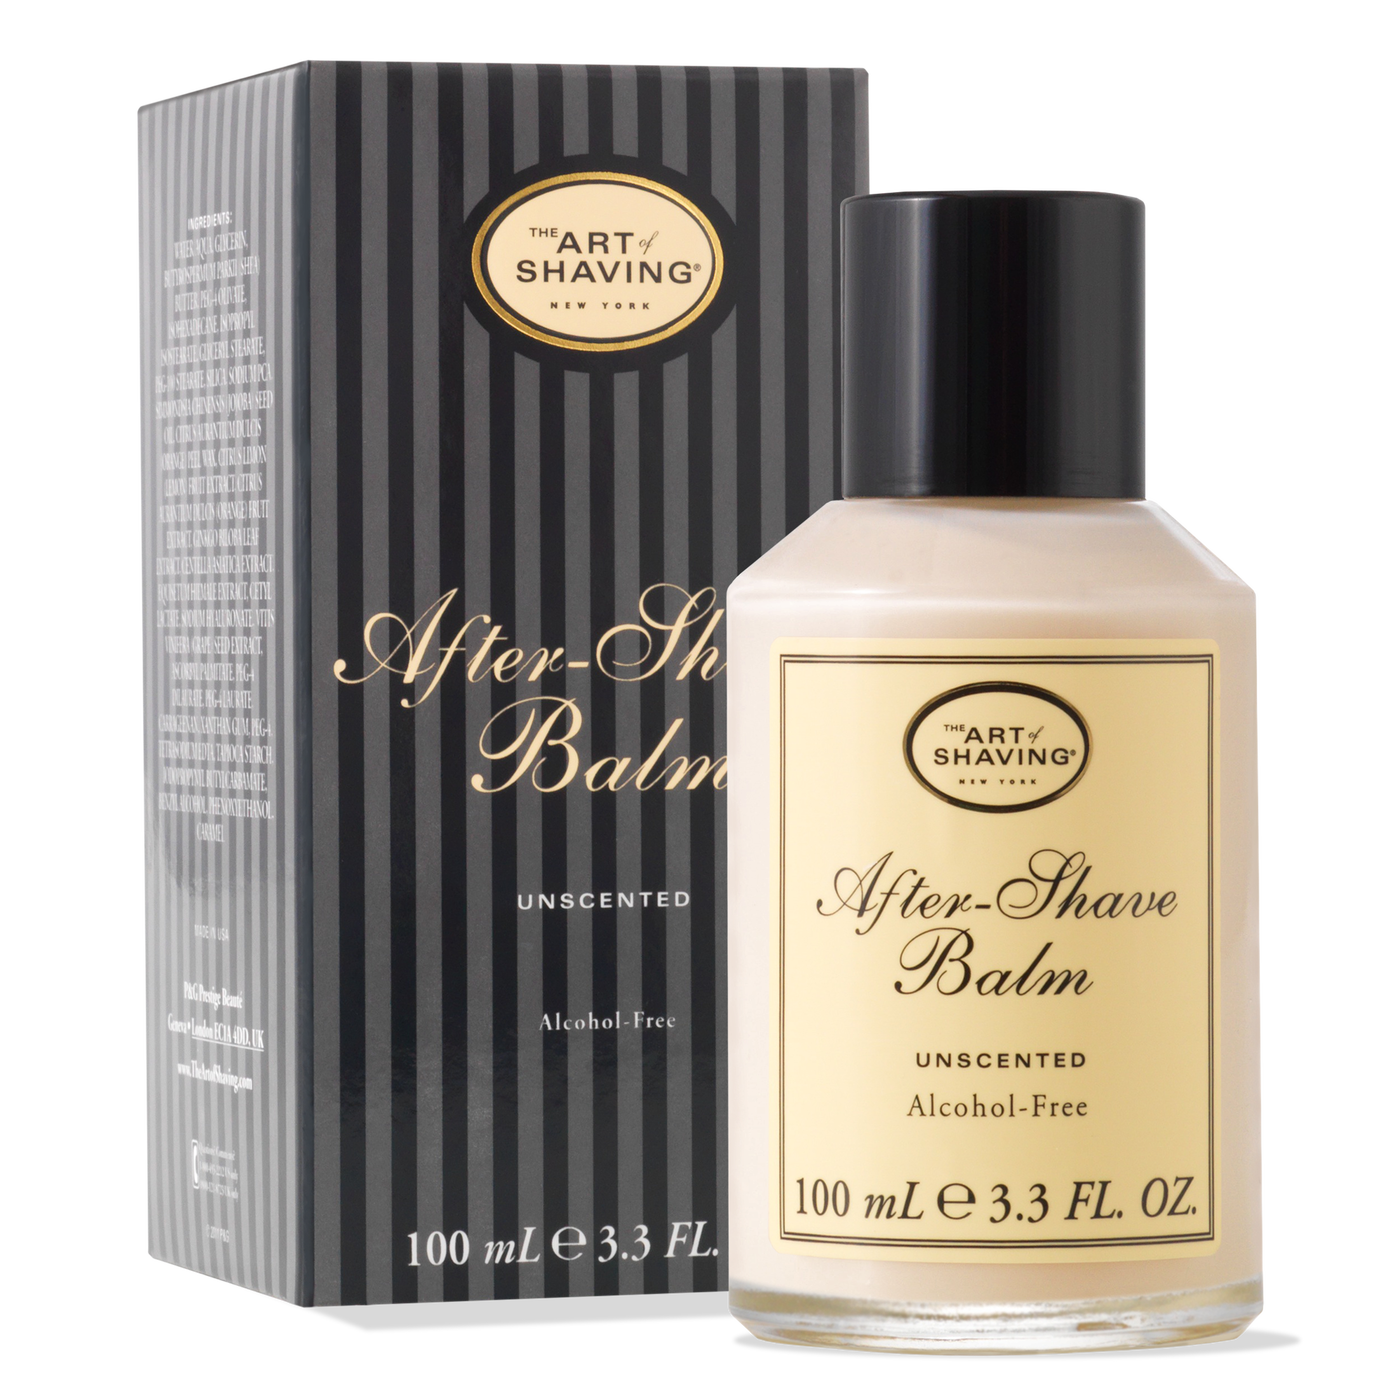 The Art Of Shaving: After Shave Balm - Unscented